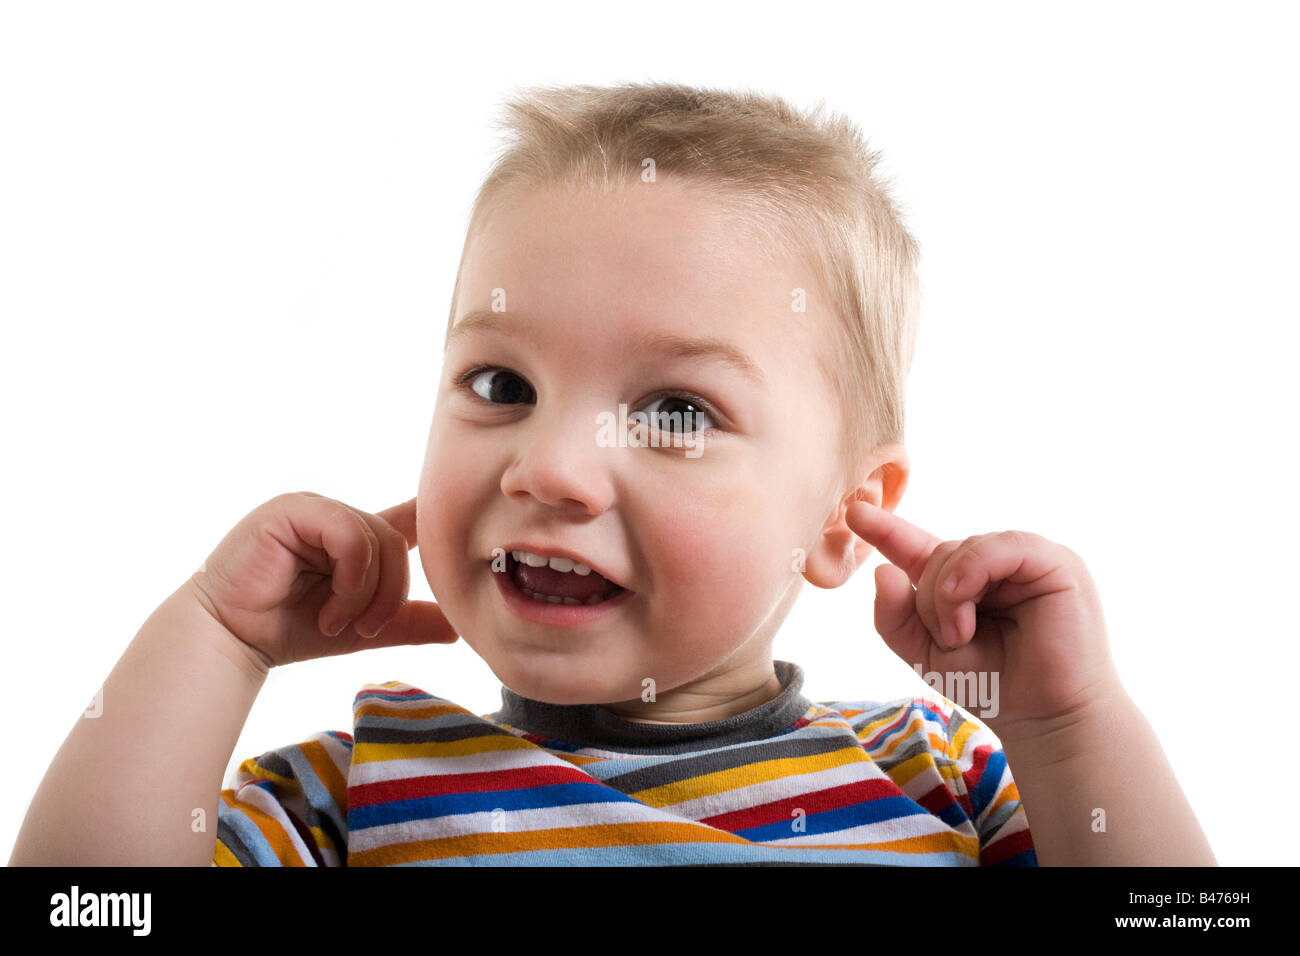 A toddler with his fingers in his ears - Stock Image